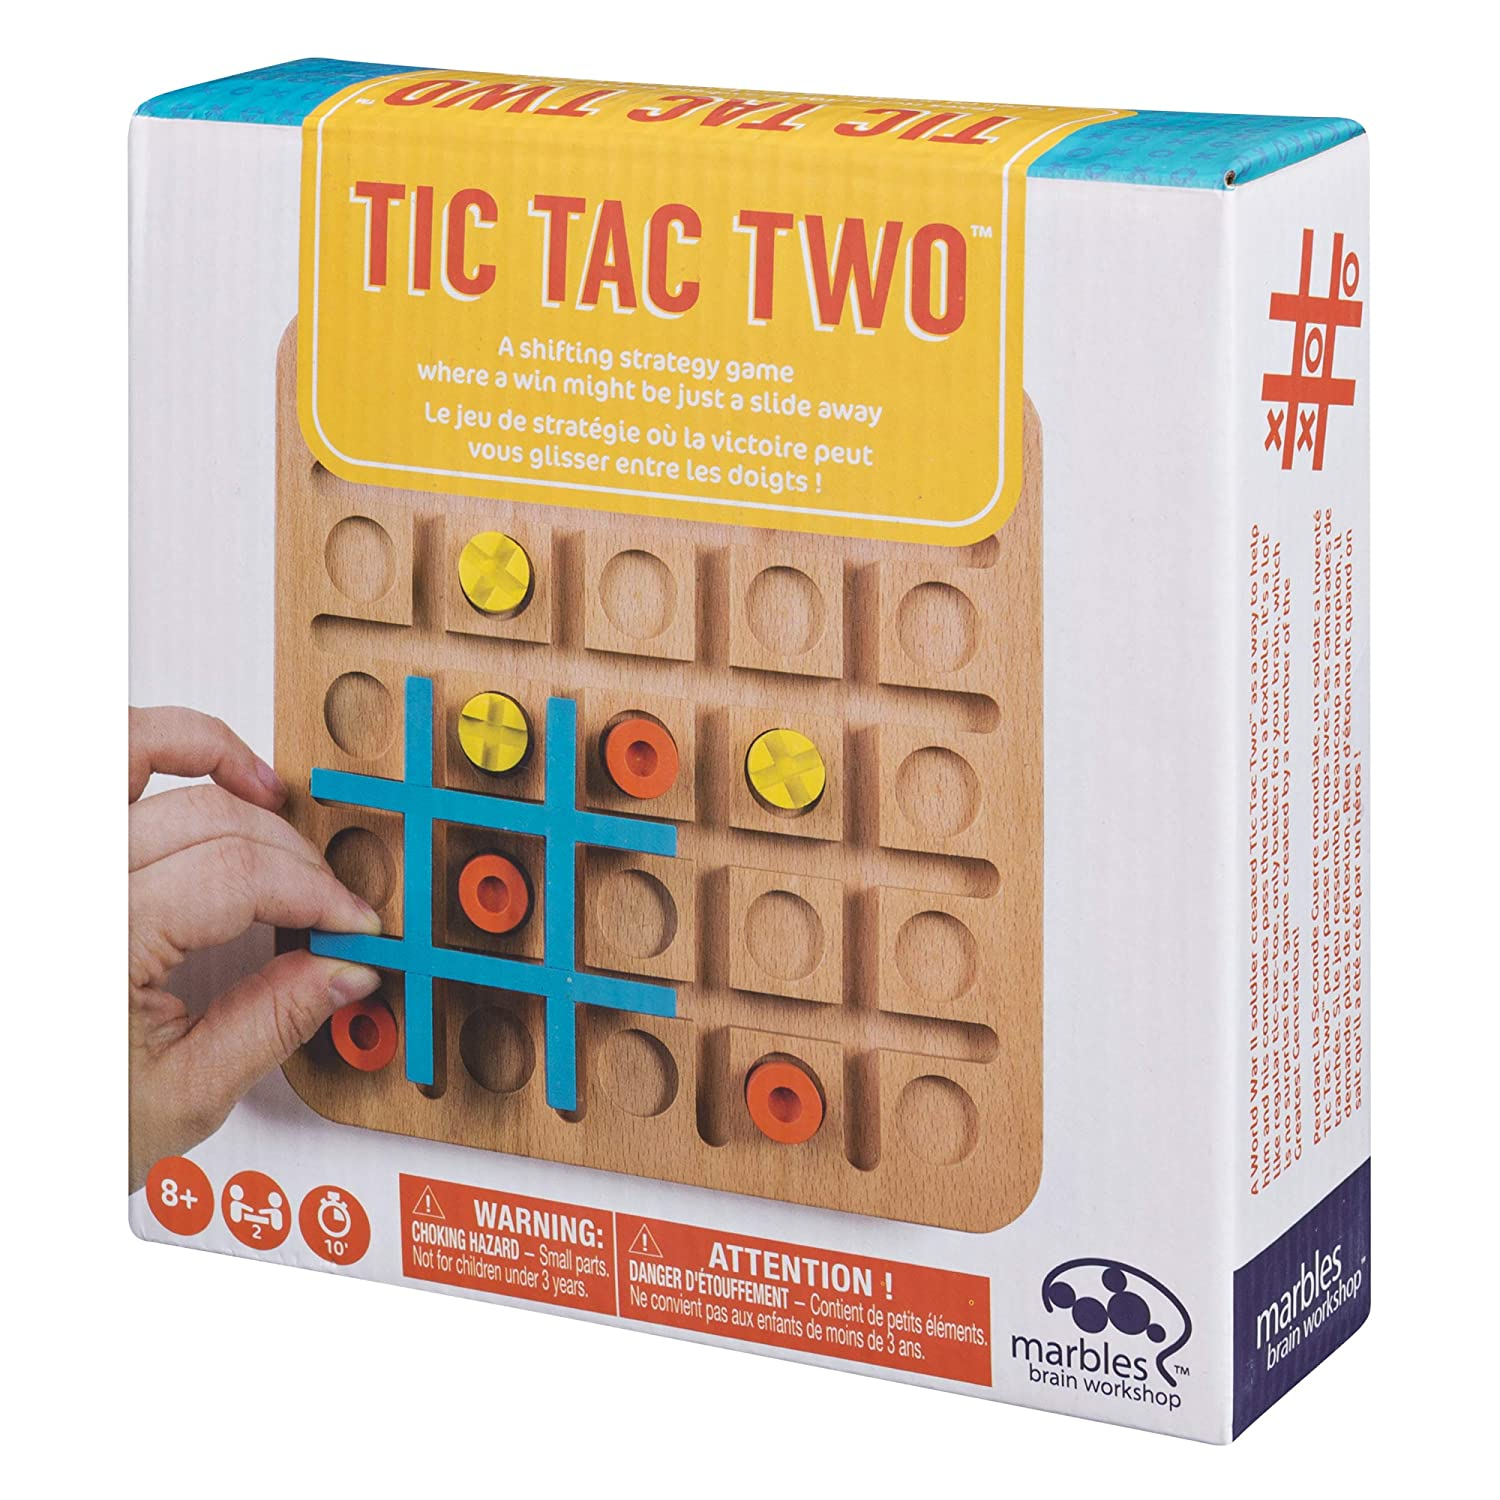 Marbles Tic Tac Two - Strategy-Based Board Game for Families, Board